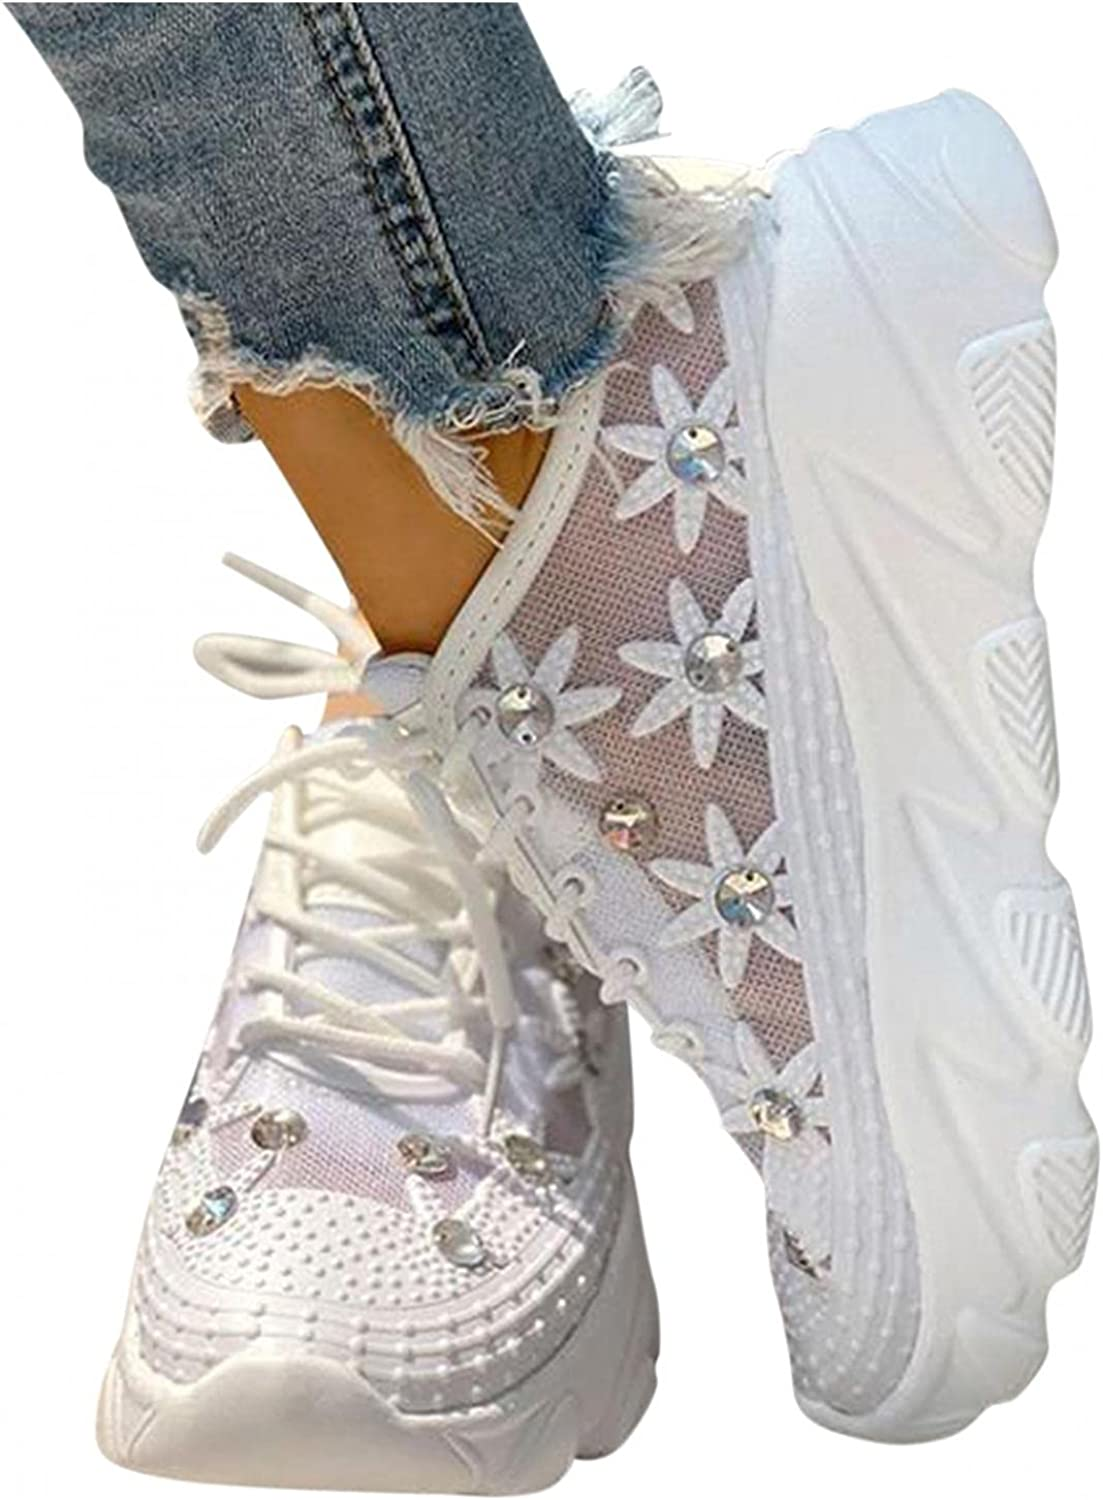 Hbeylia Platform Wedge Fashion Sneakers For Women Girls Rhinestones Flower Chunky Bottom Heels Walking Running Tennis Shoes Lightweight Breathable Mesh Lace Up Low Top Athletic Sport Shoes For Students